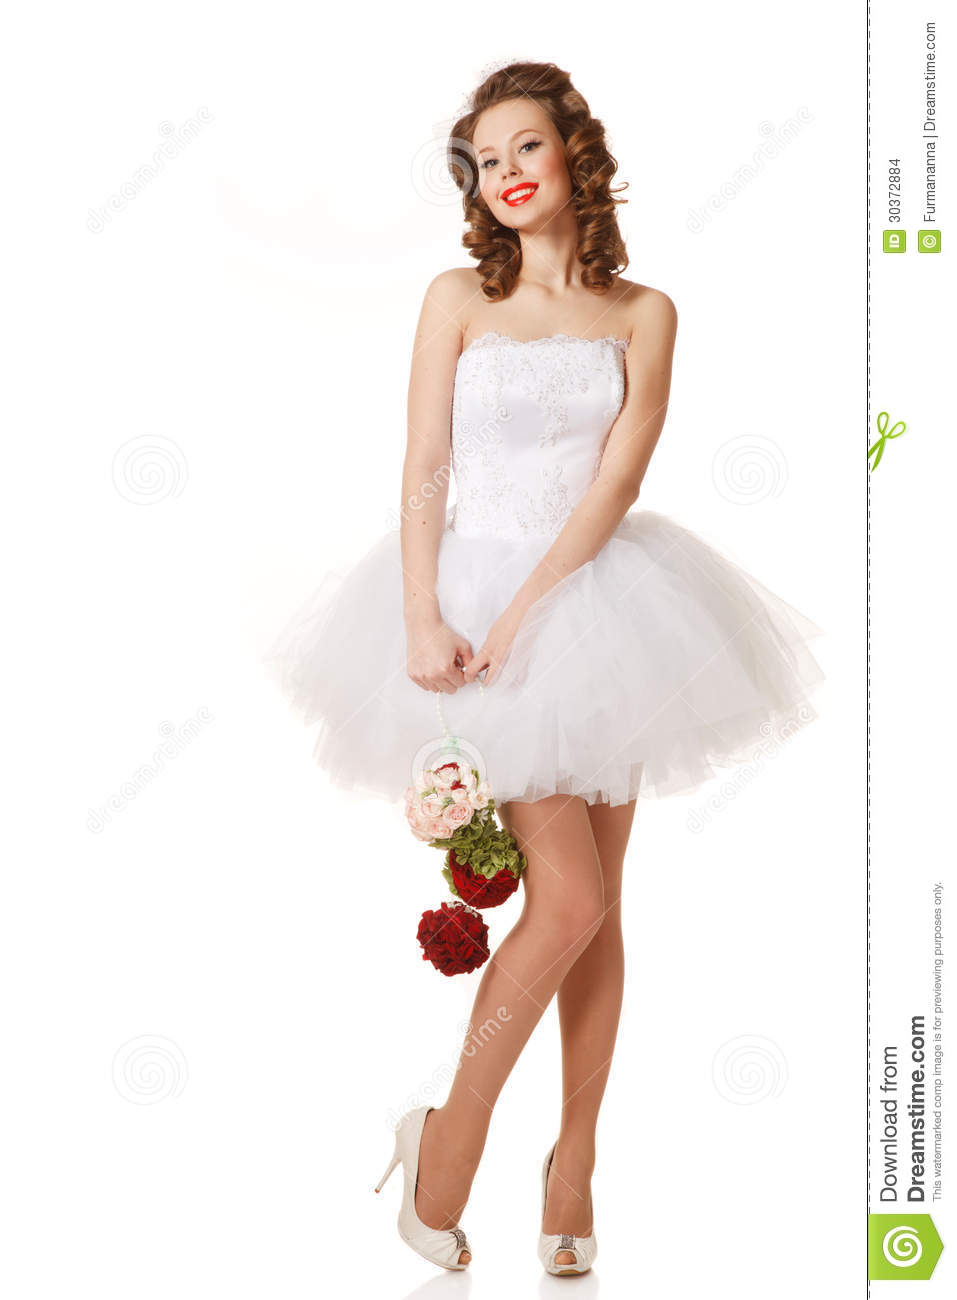 Pin Up Bride Stock Photo Image Of Happiness Elegance 30372884